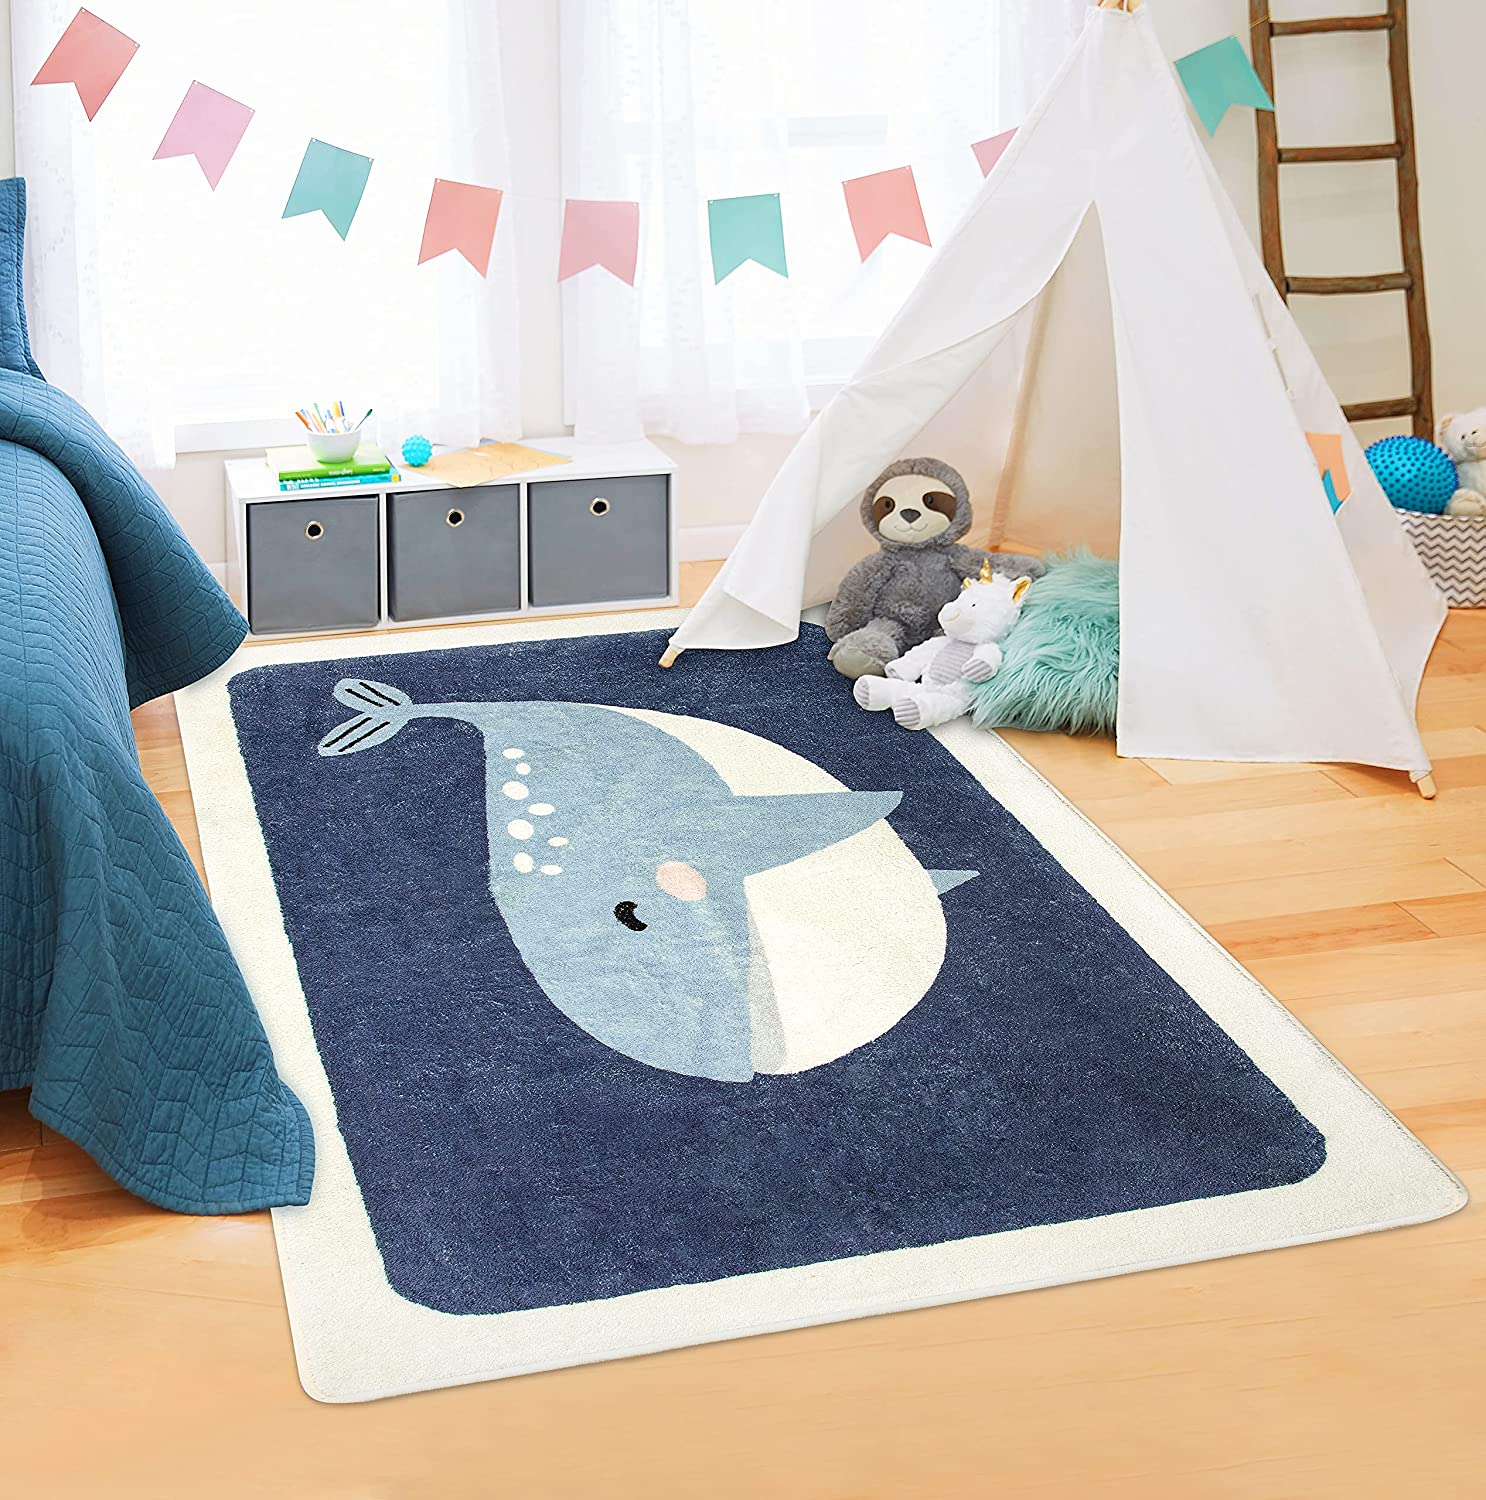 Kids Rug Ultra Daily bargain sale Soft Rugs for Kid M Play No-Slip Don't miss the campaign Baby 3'x5' Room